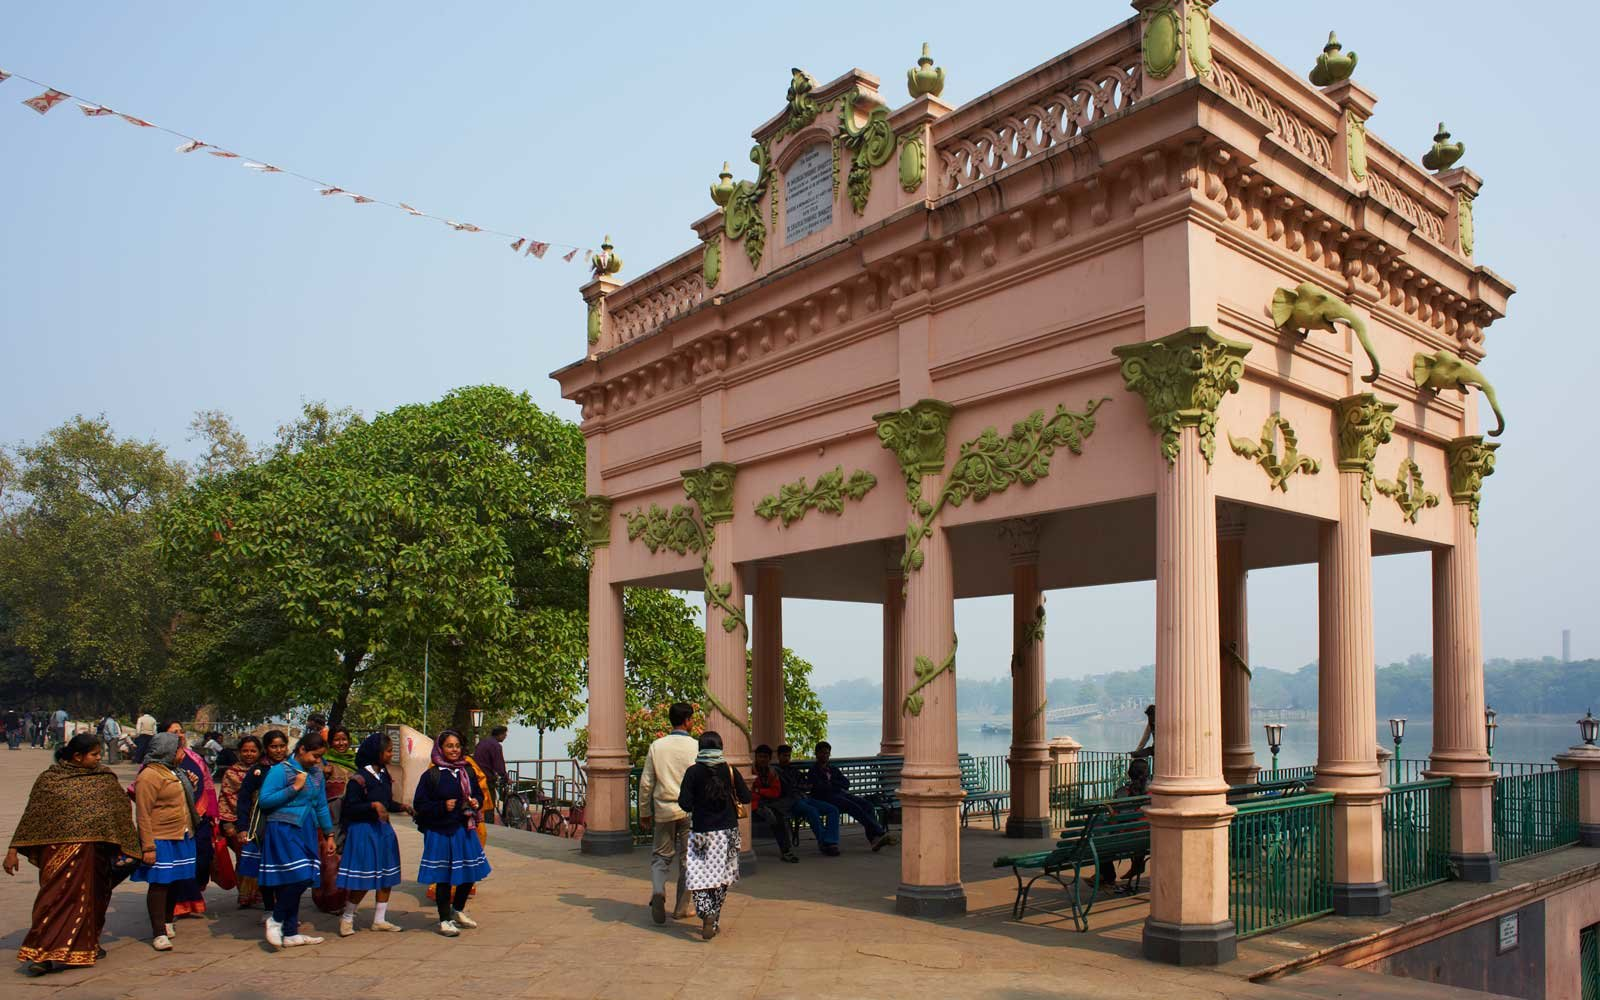 Kiosk built in 1921 by Mr. Roquitte, City of Chandannagar, West Bengal, India